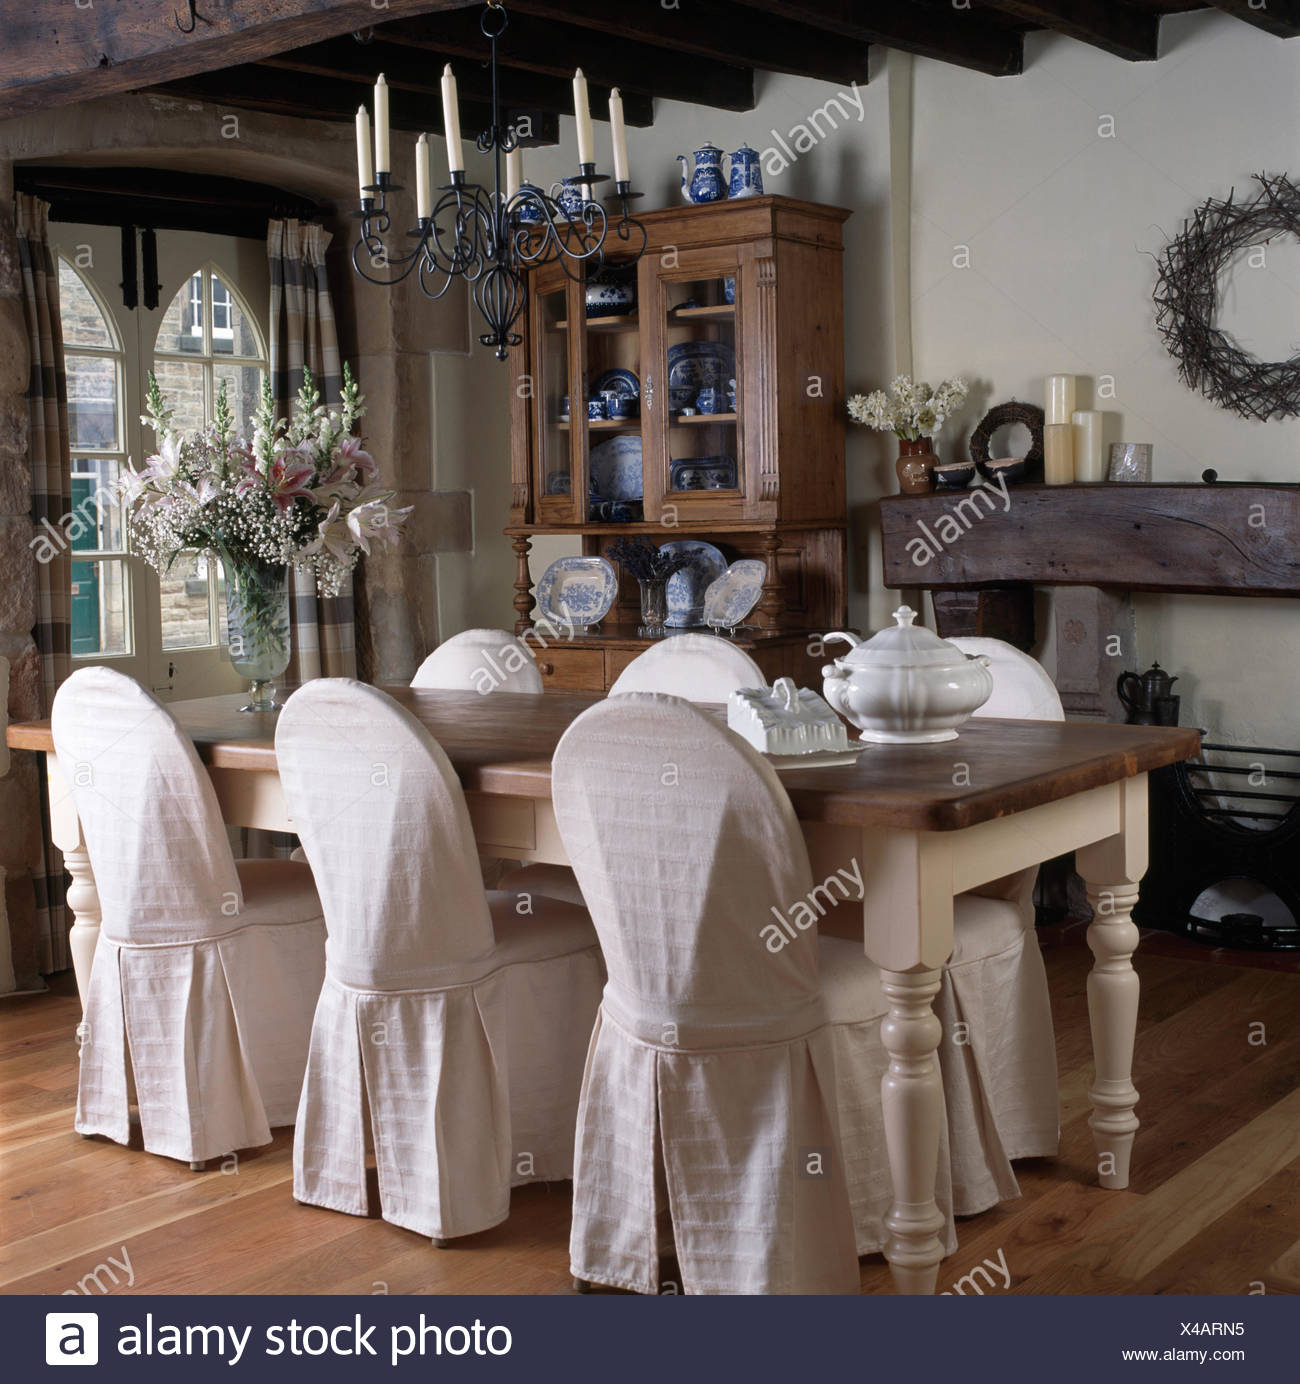 Candle Chandelier Above Painted Dining Table And Chairs With White Textured  Loose Covers In A Cottage Dining Room